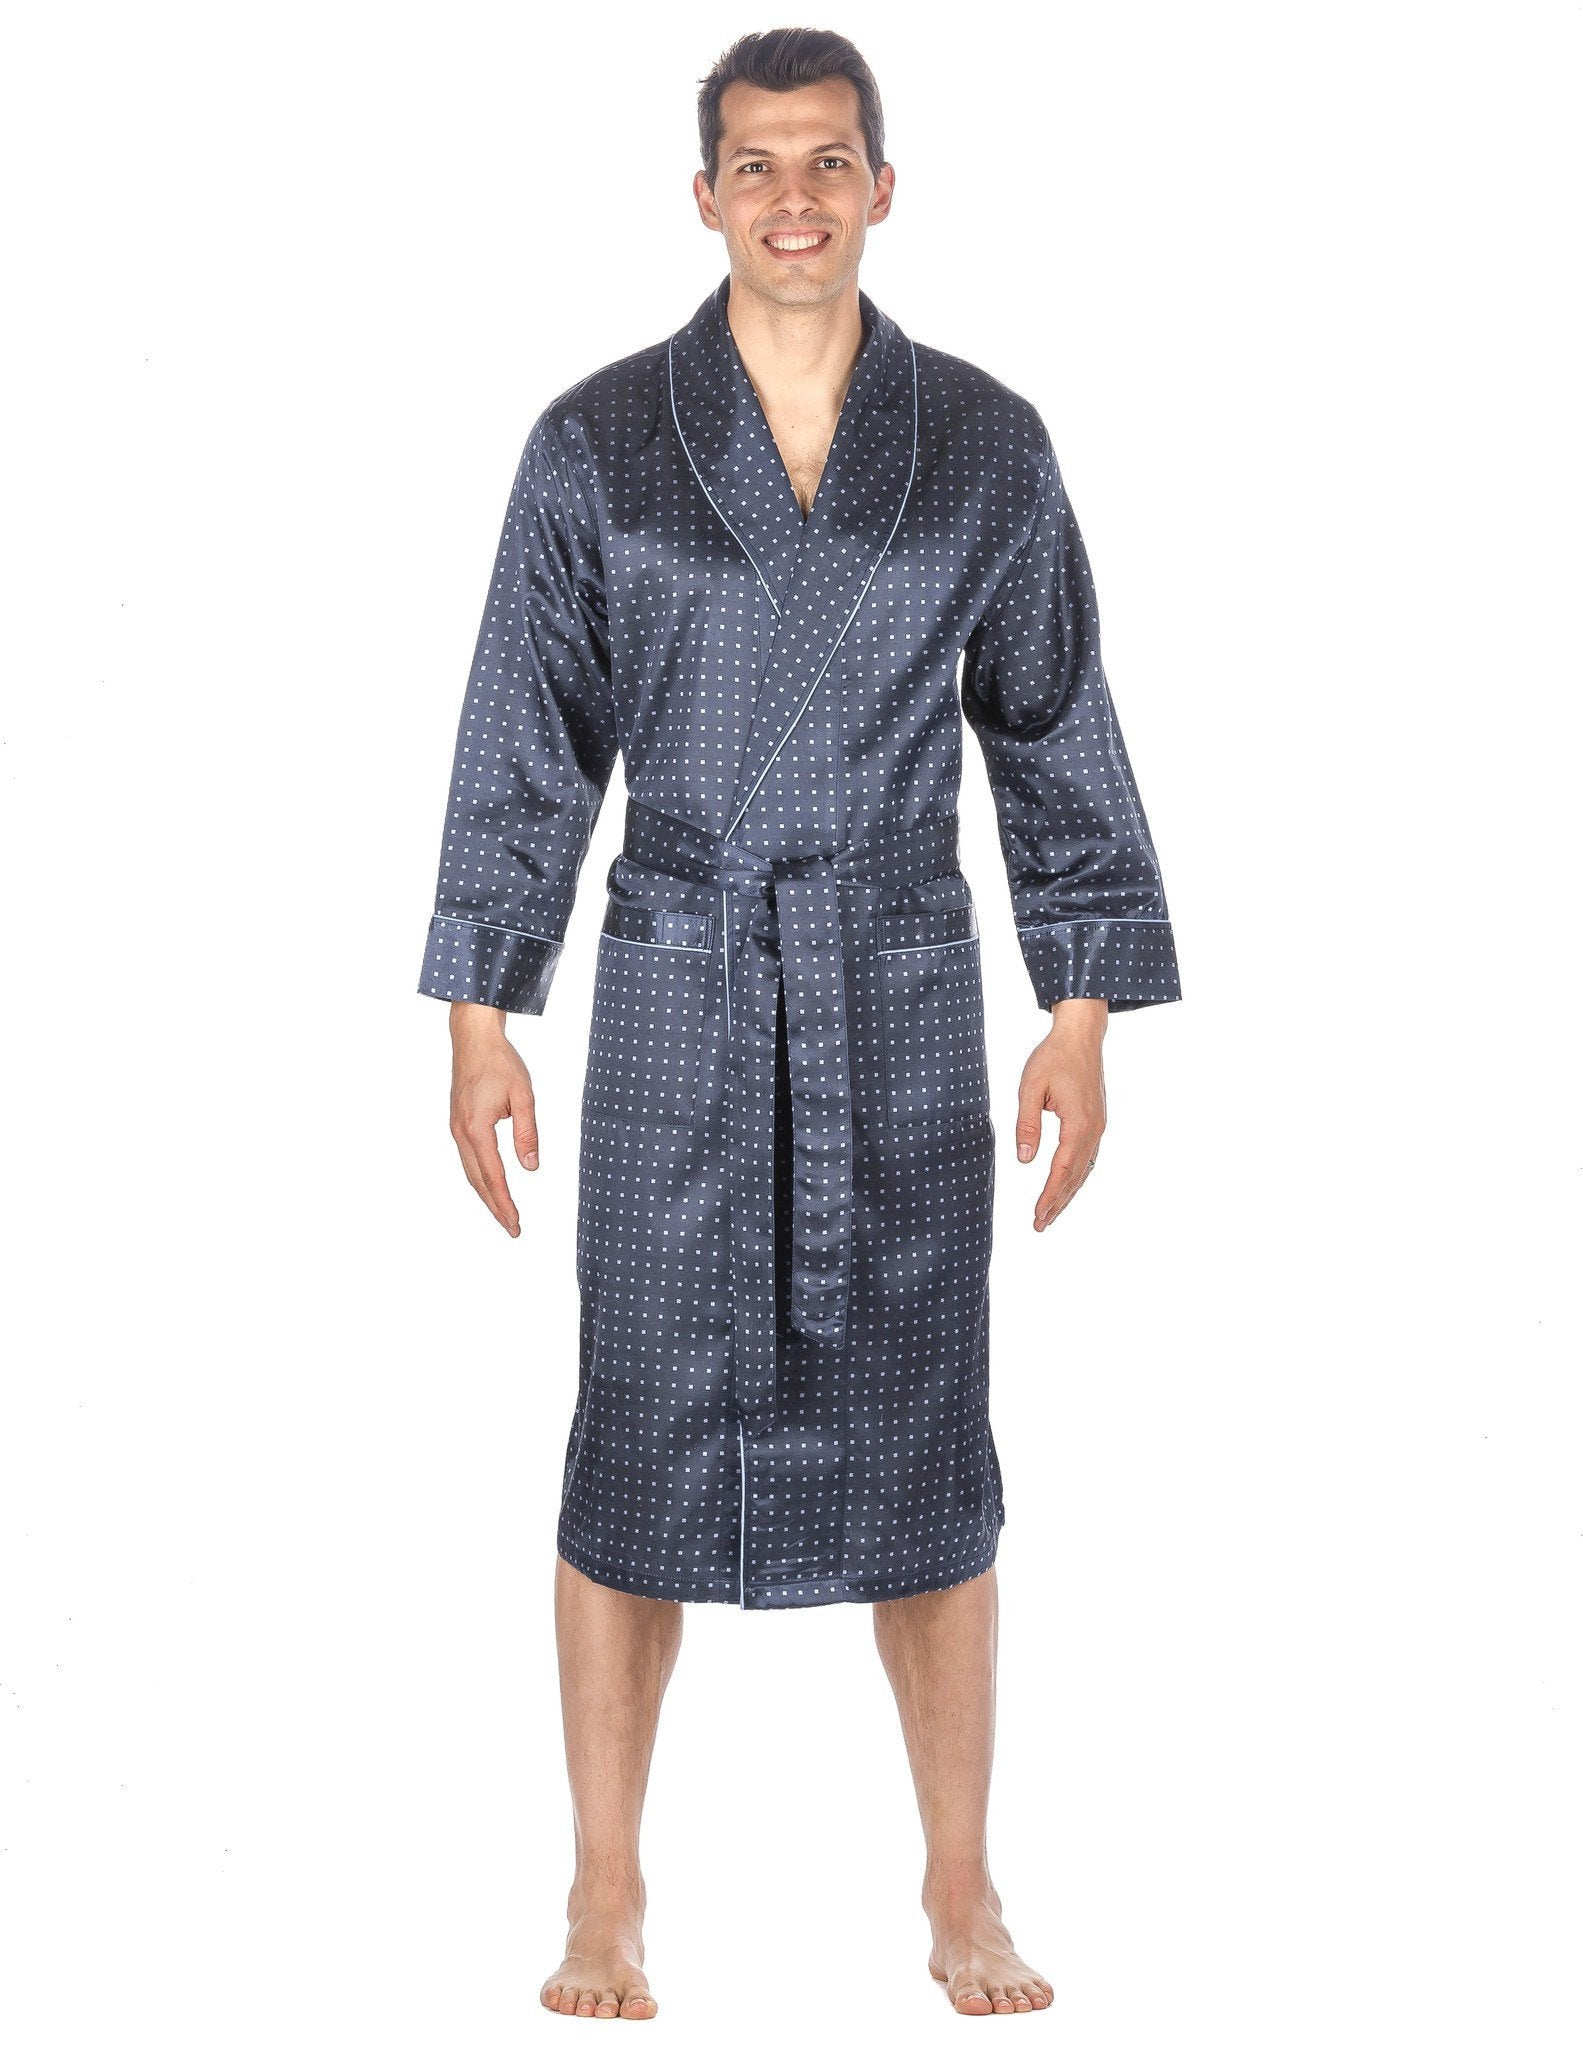 Men's Premium Satin Robe - Floating Squares